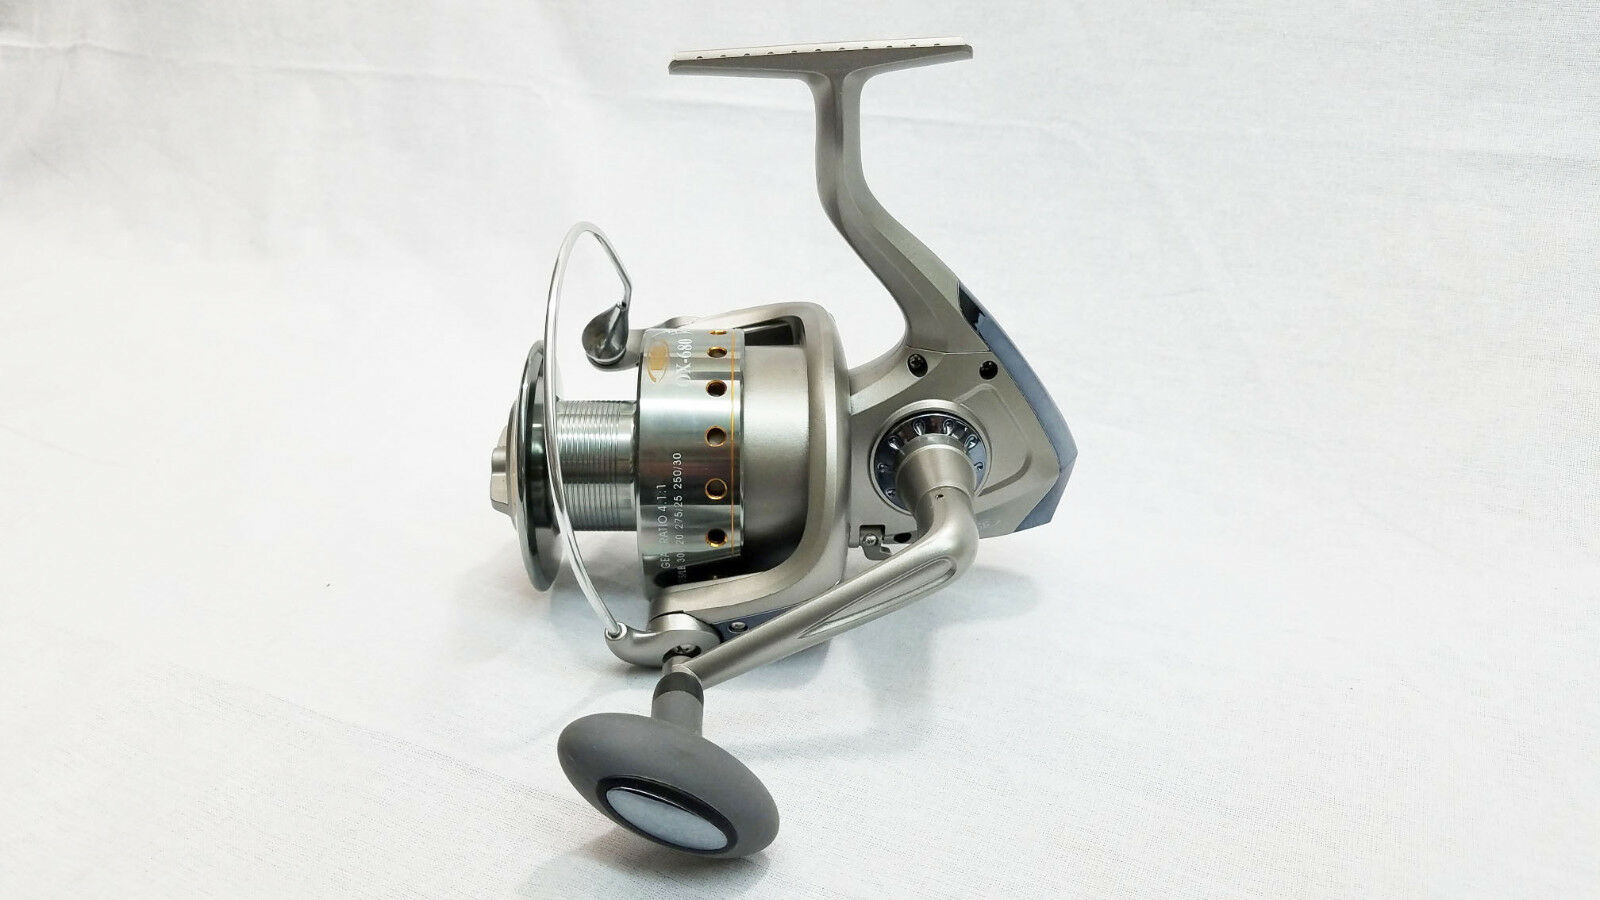 KING HAWK HOGG DELUXE SPINNING REEL 6BB OX-680 (FOR CATFISH ROD)